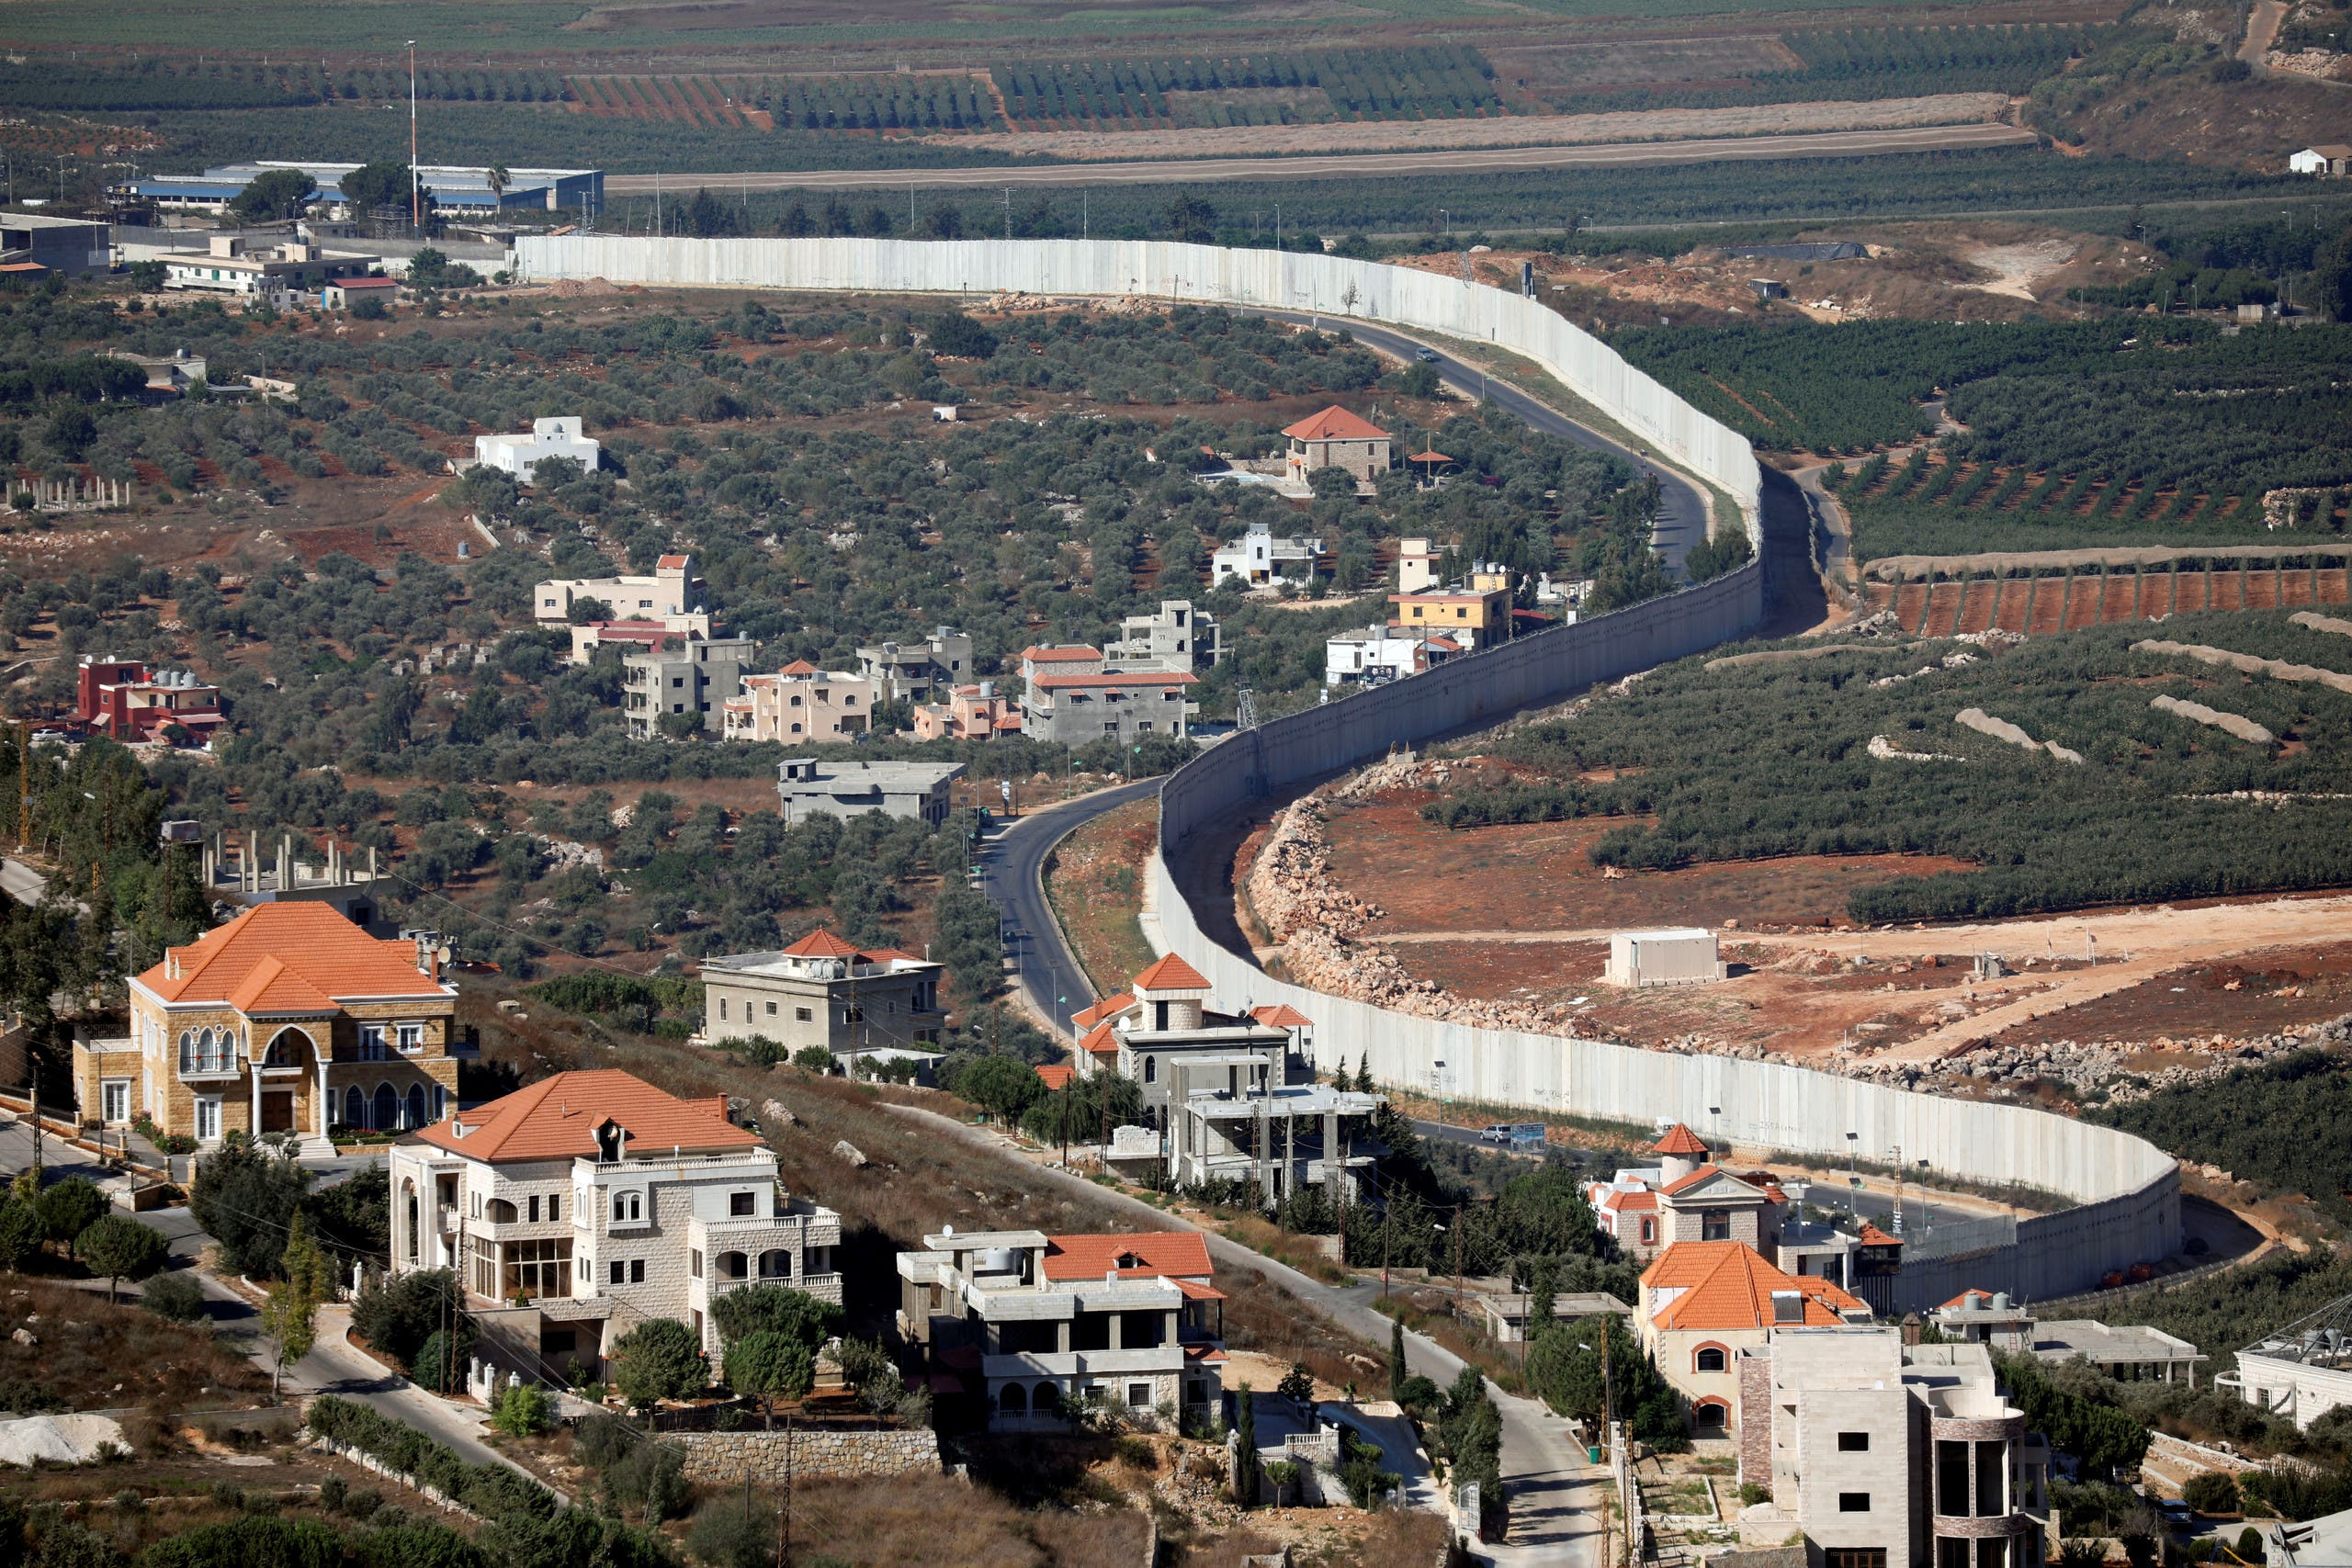 Houses and cars are seen in the Lebanese village of Adaisseh next to the Israel-Lebanon border, as seen from Kibbutz Misgav Am in northern Israel August 26, 2019. (Reuters)